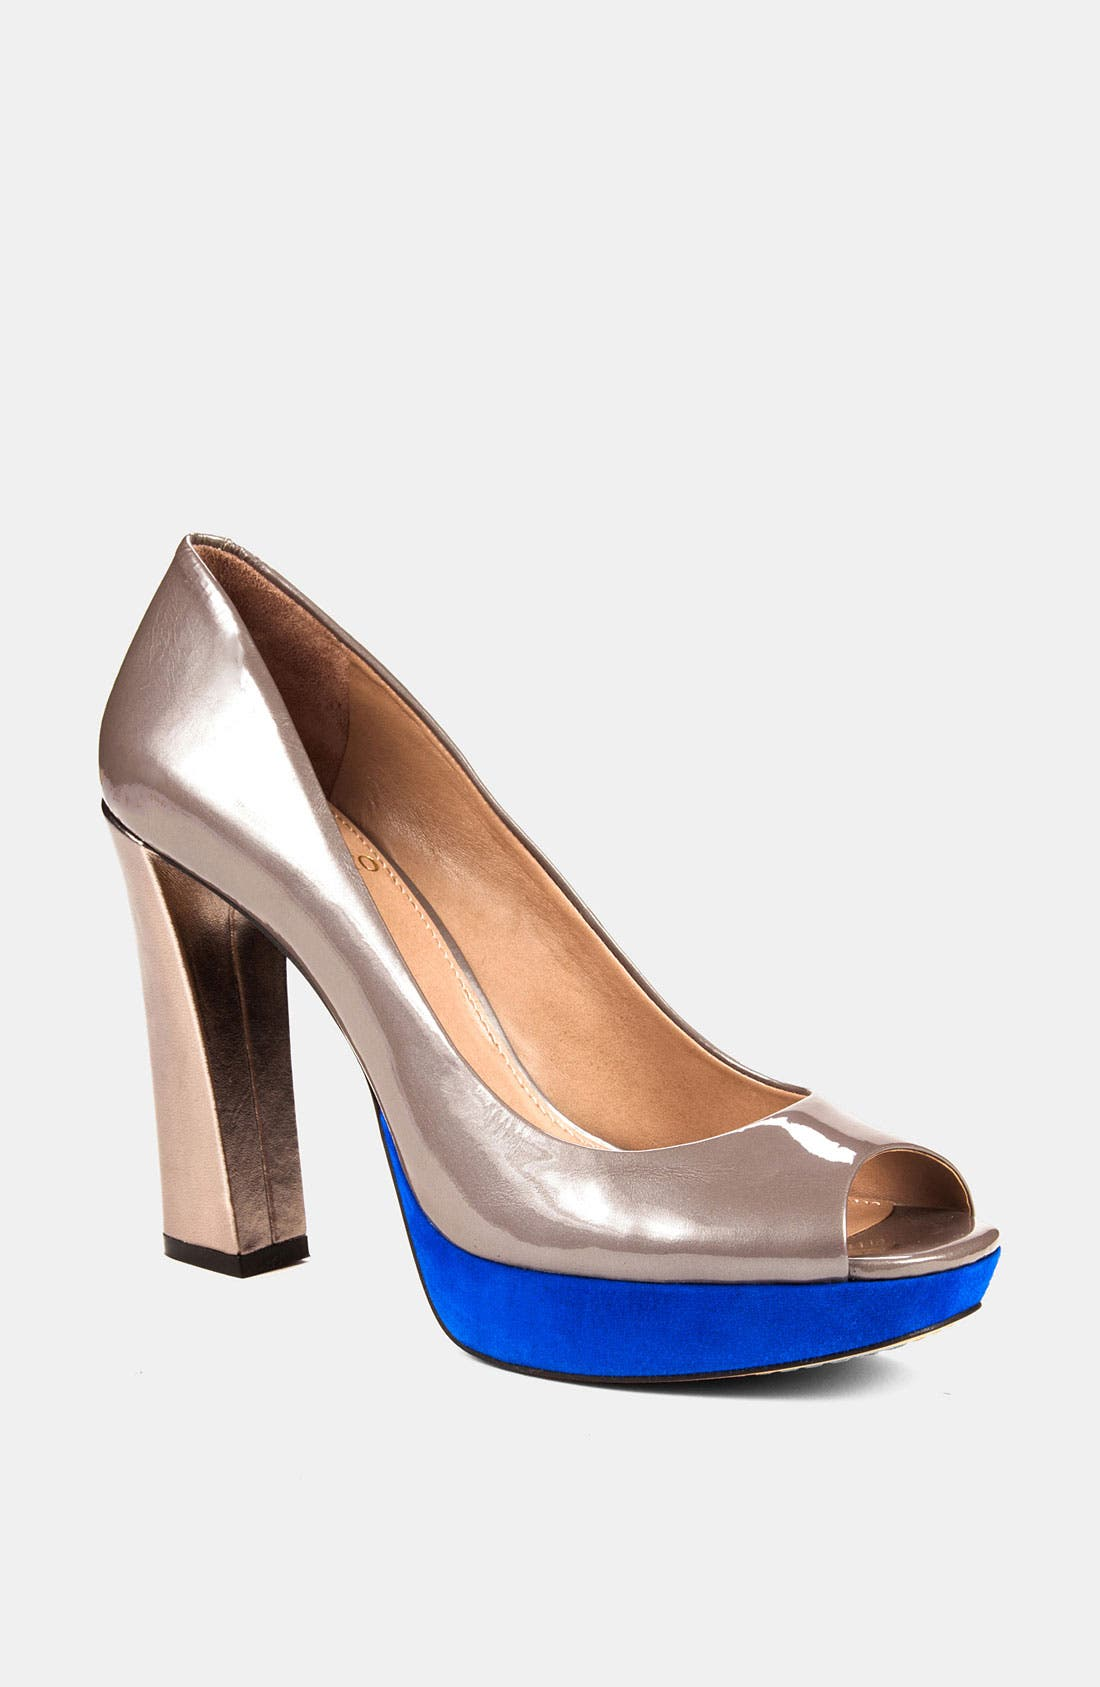 Alternate Image 1 Selected - Vince Camuto 'Polona' Pump